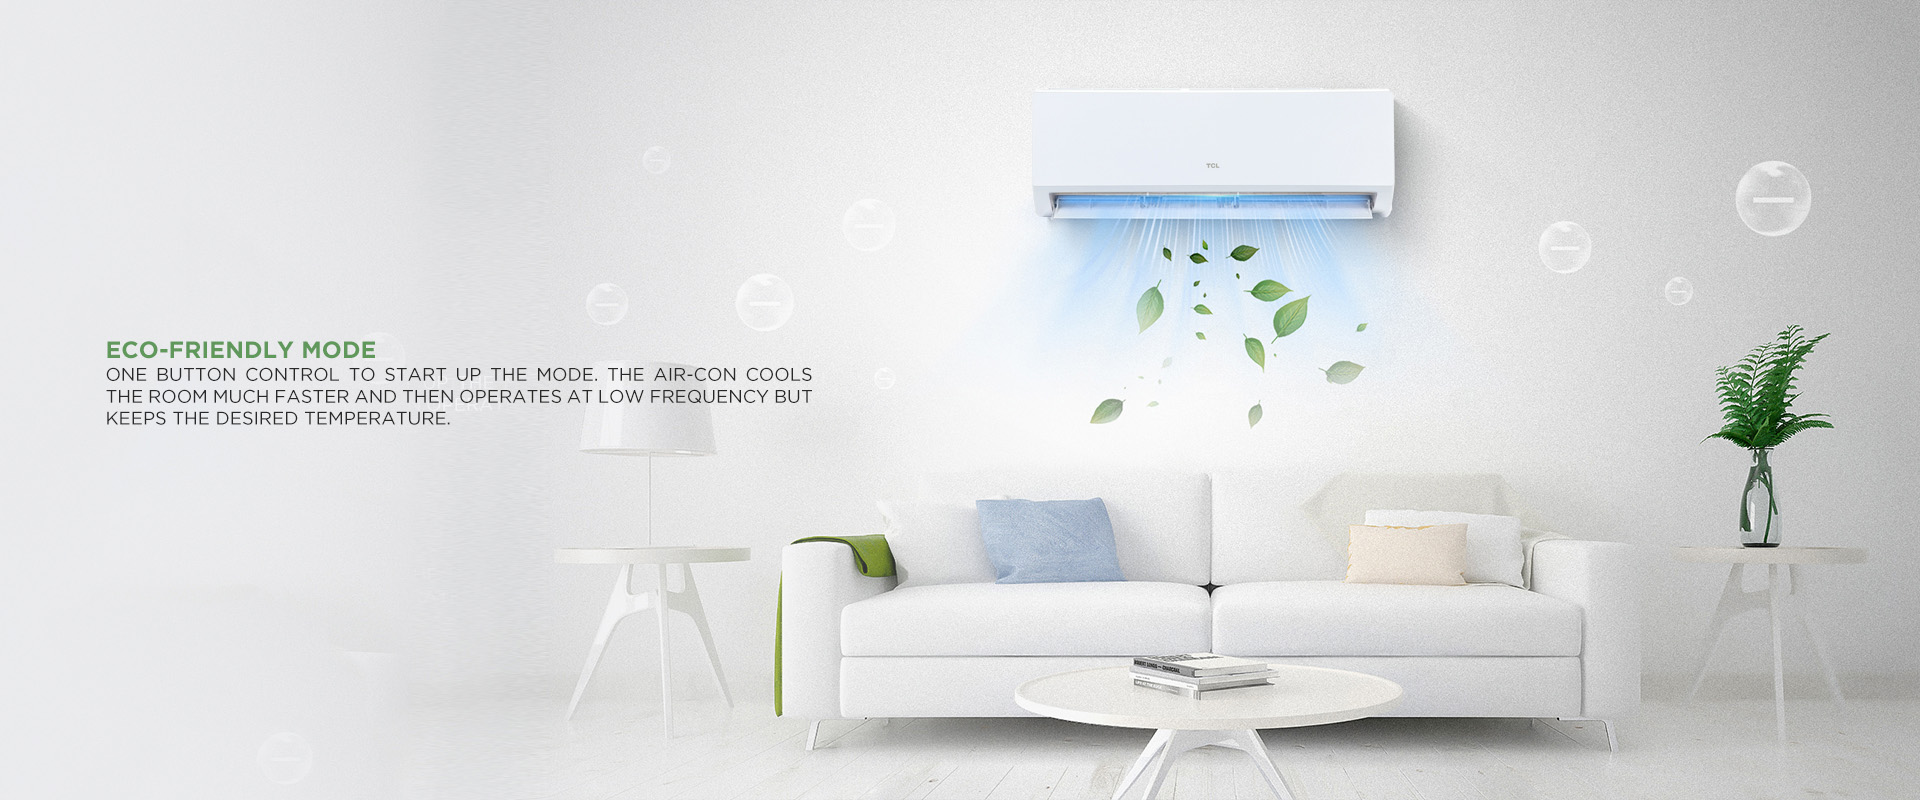 ECO-Friendly Mode - One button control to start up the mode. The air-con cools the room much faster and then operates at low frequency but keeps the desired temperature.